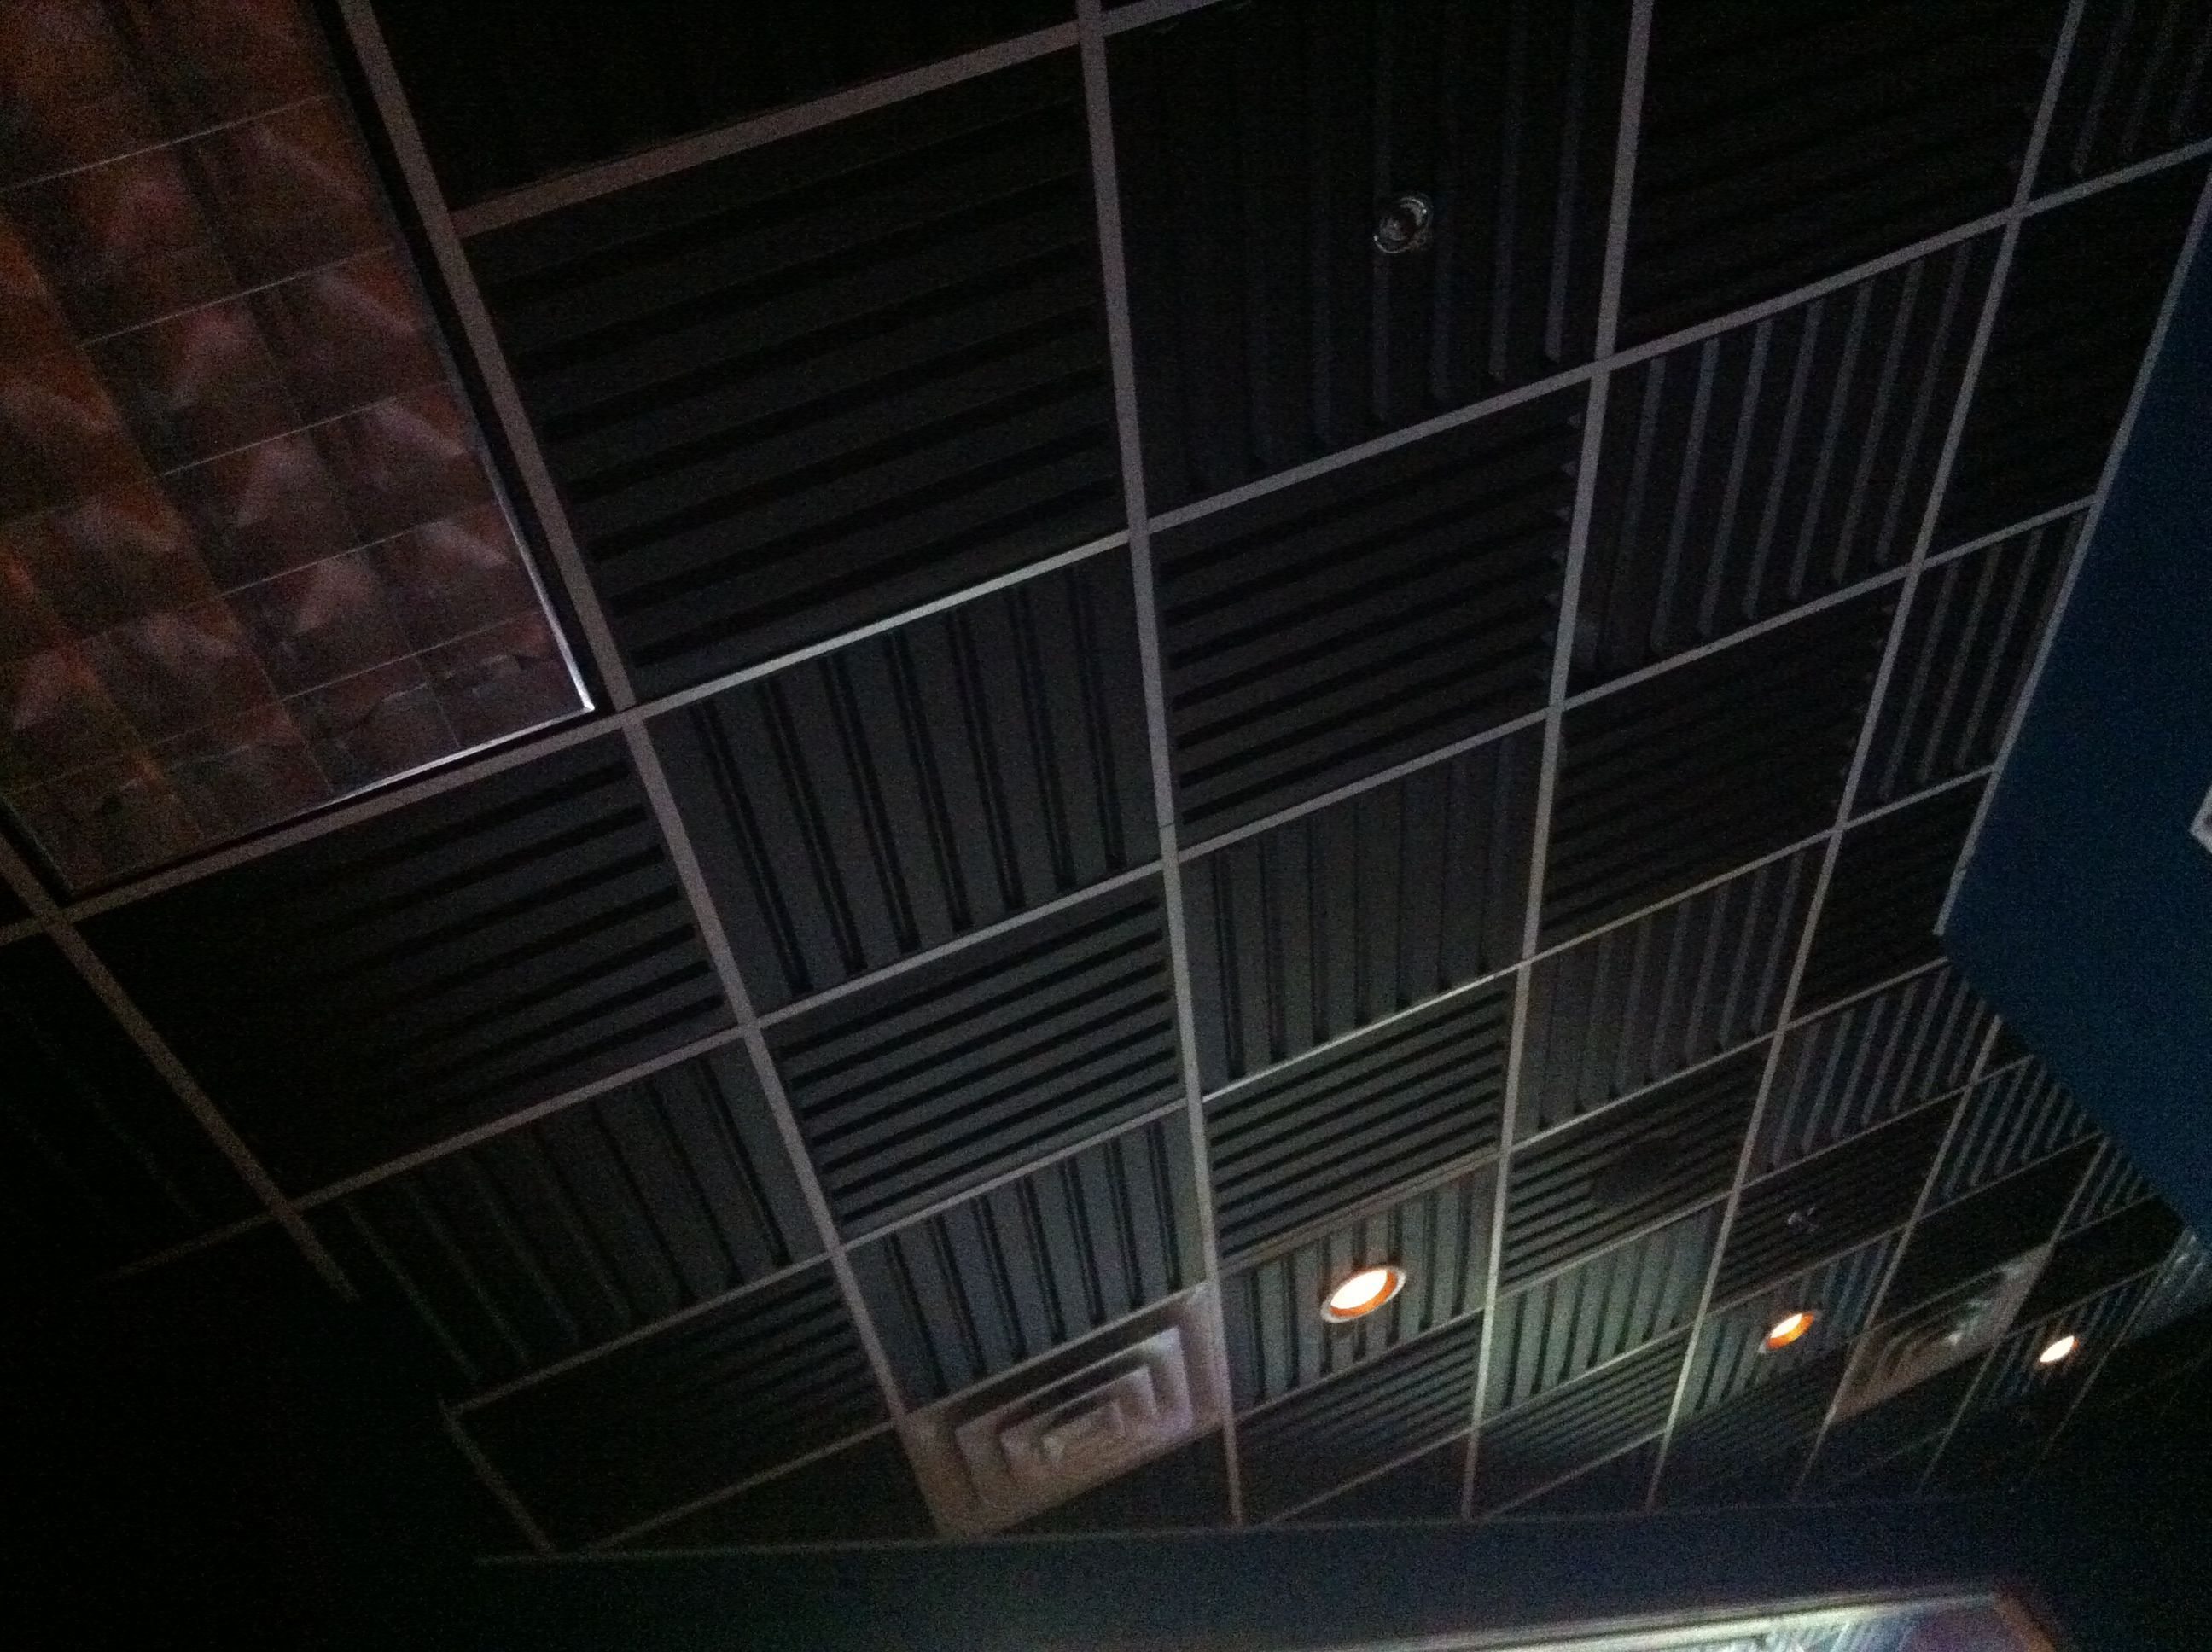 Ceiling Tiles With Sound Proofing Ceiling Tiles Sound Proofing